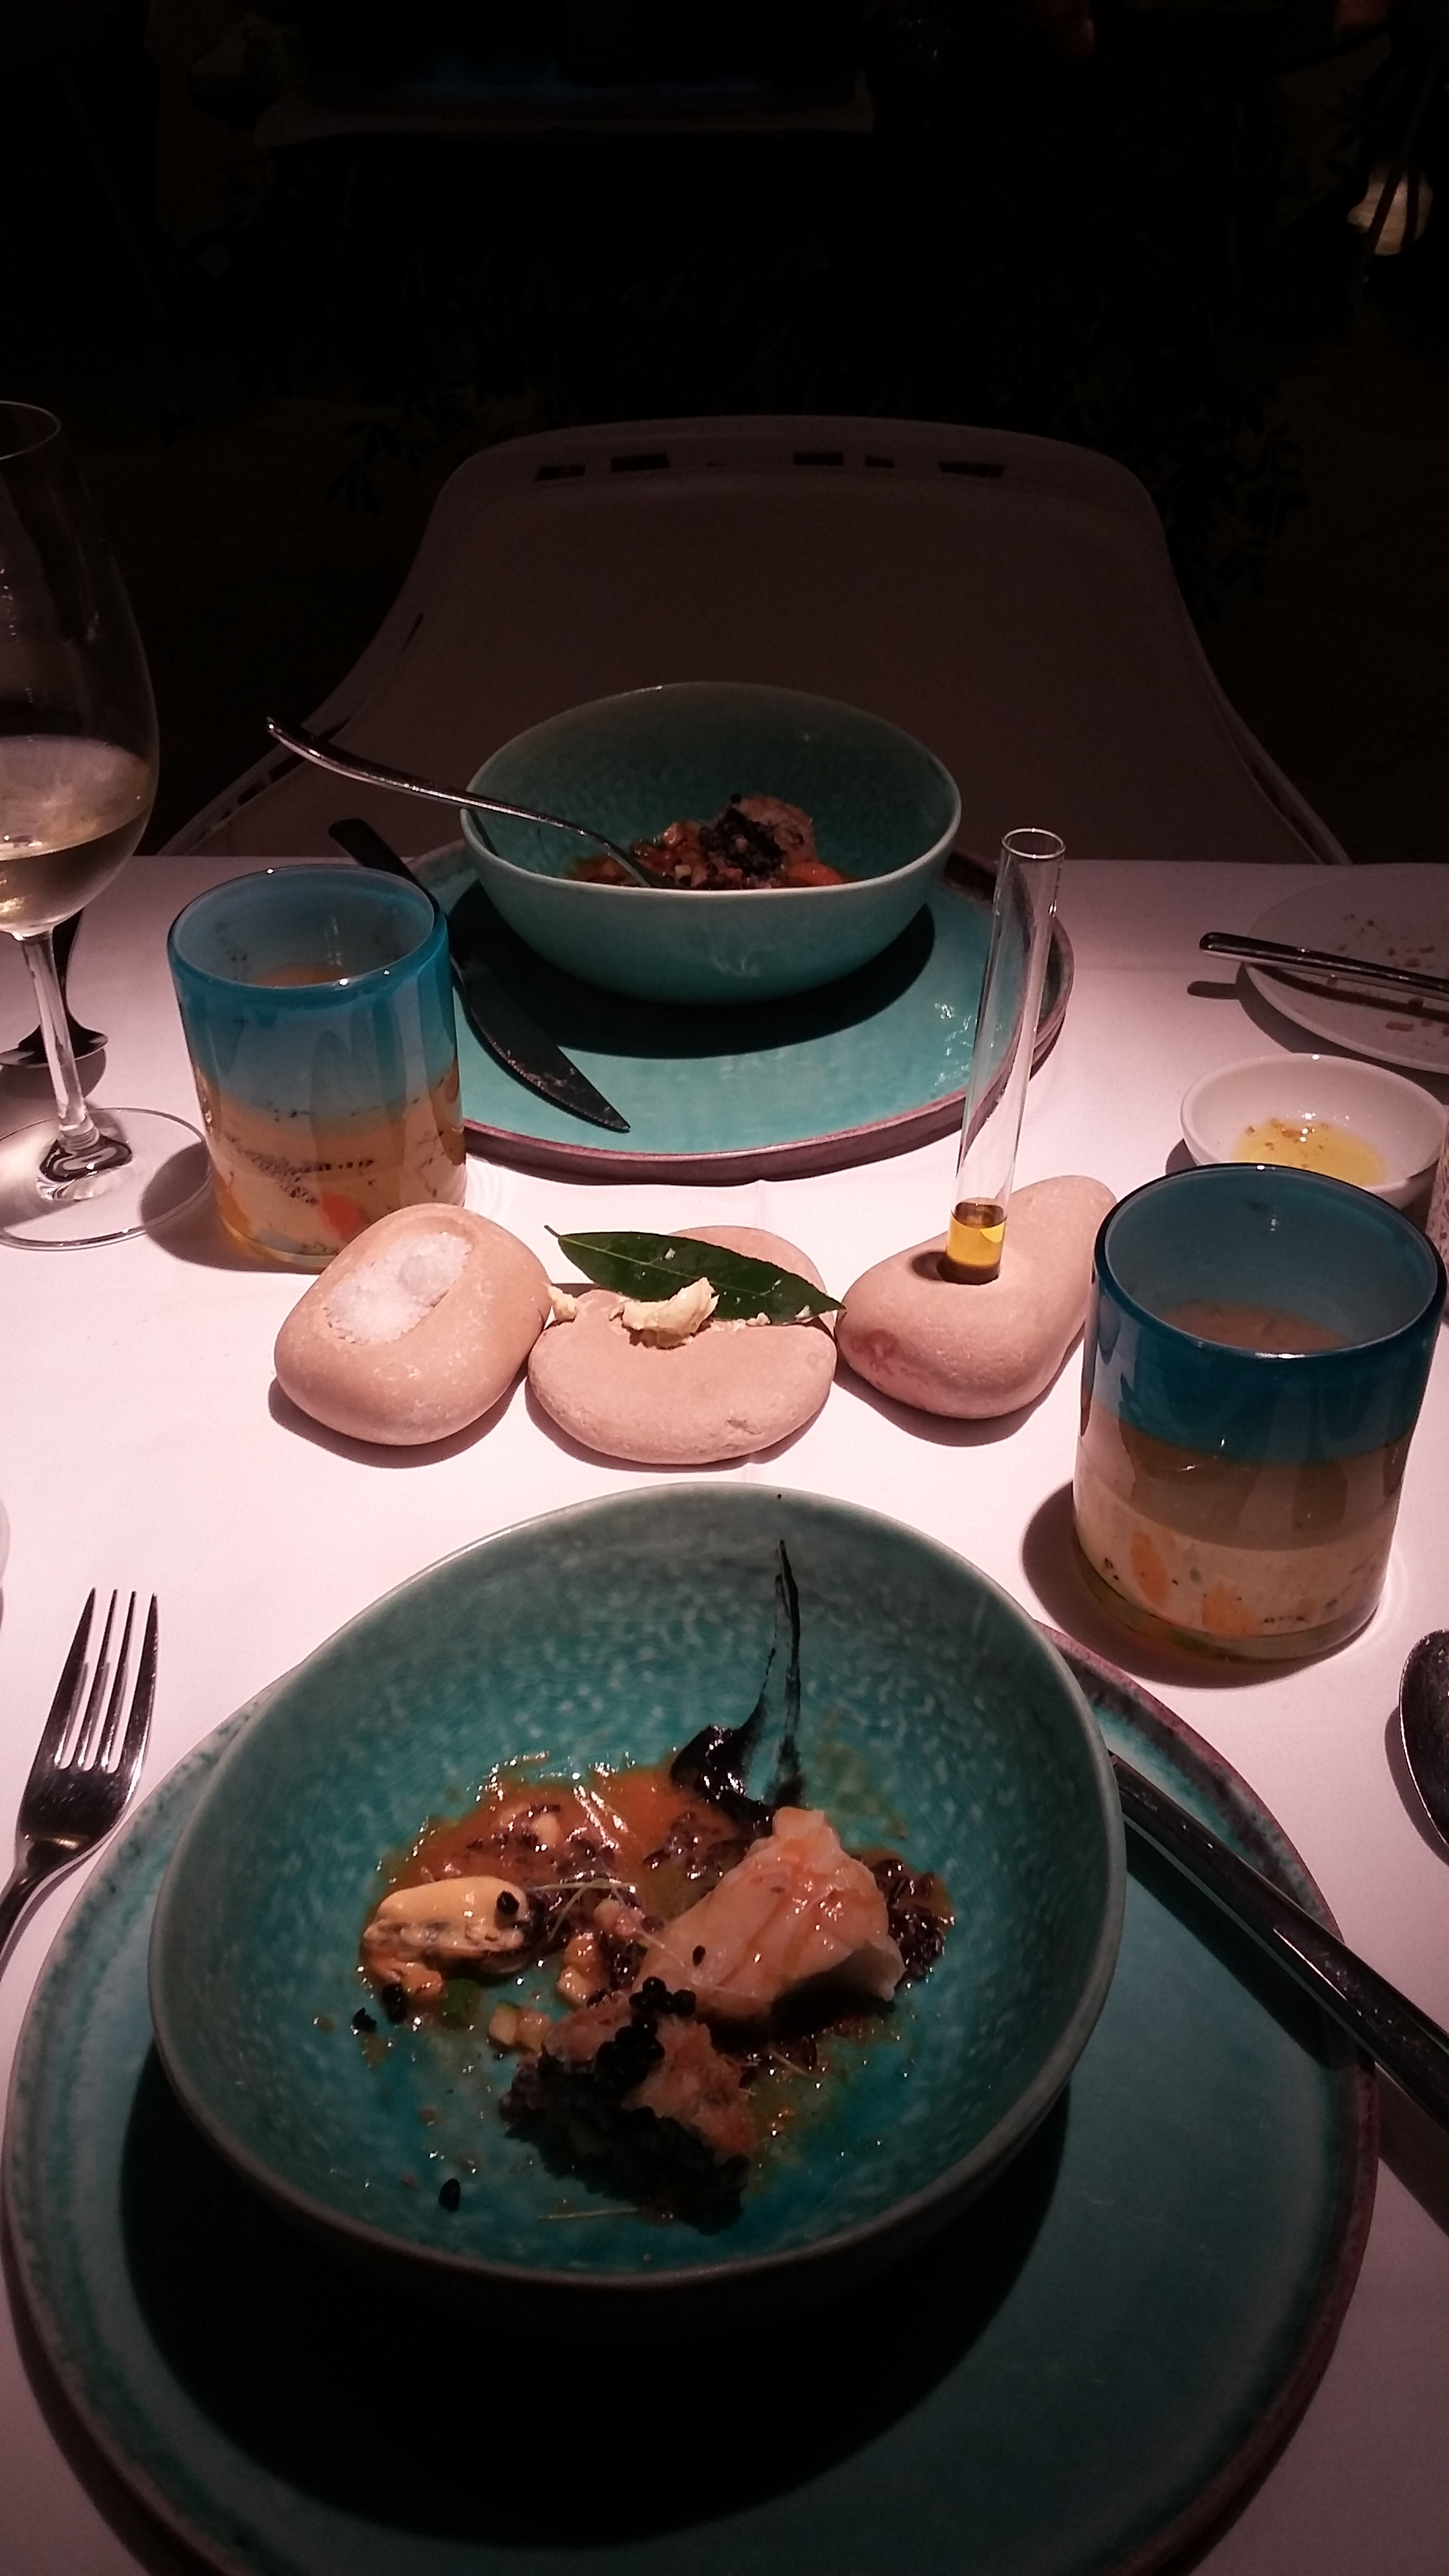 Monte - Michelin-starred restaurant - has the best dinnerware